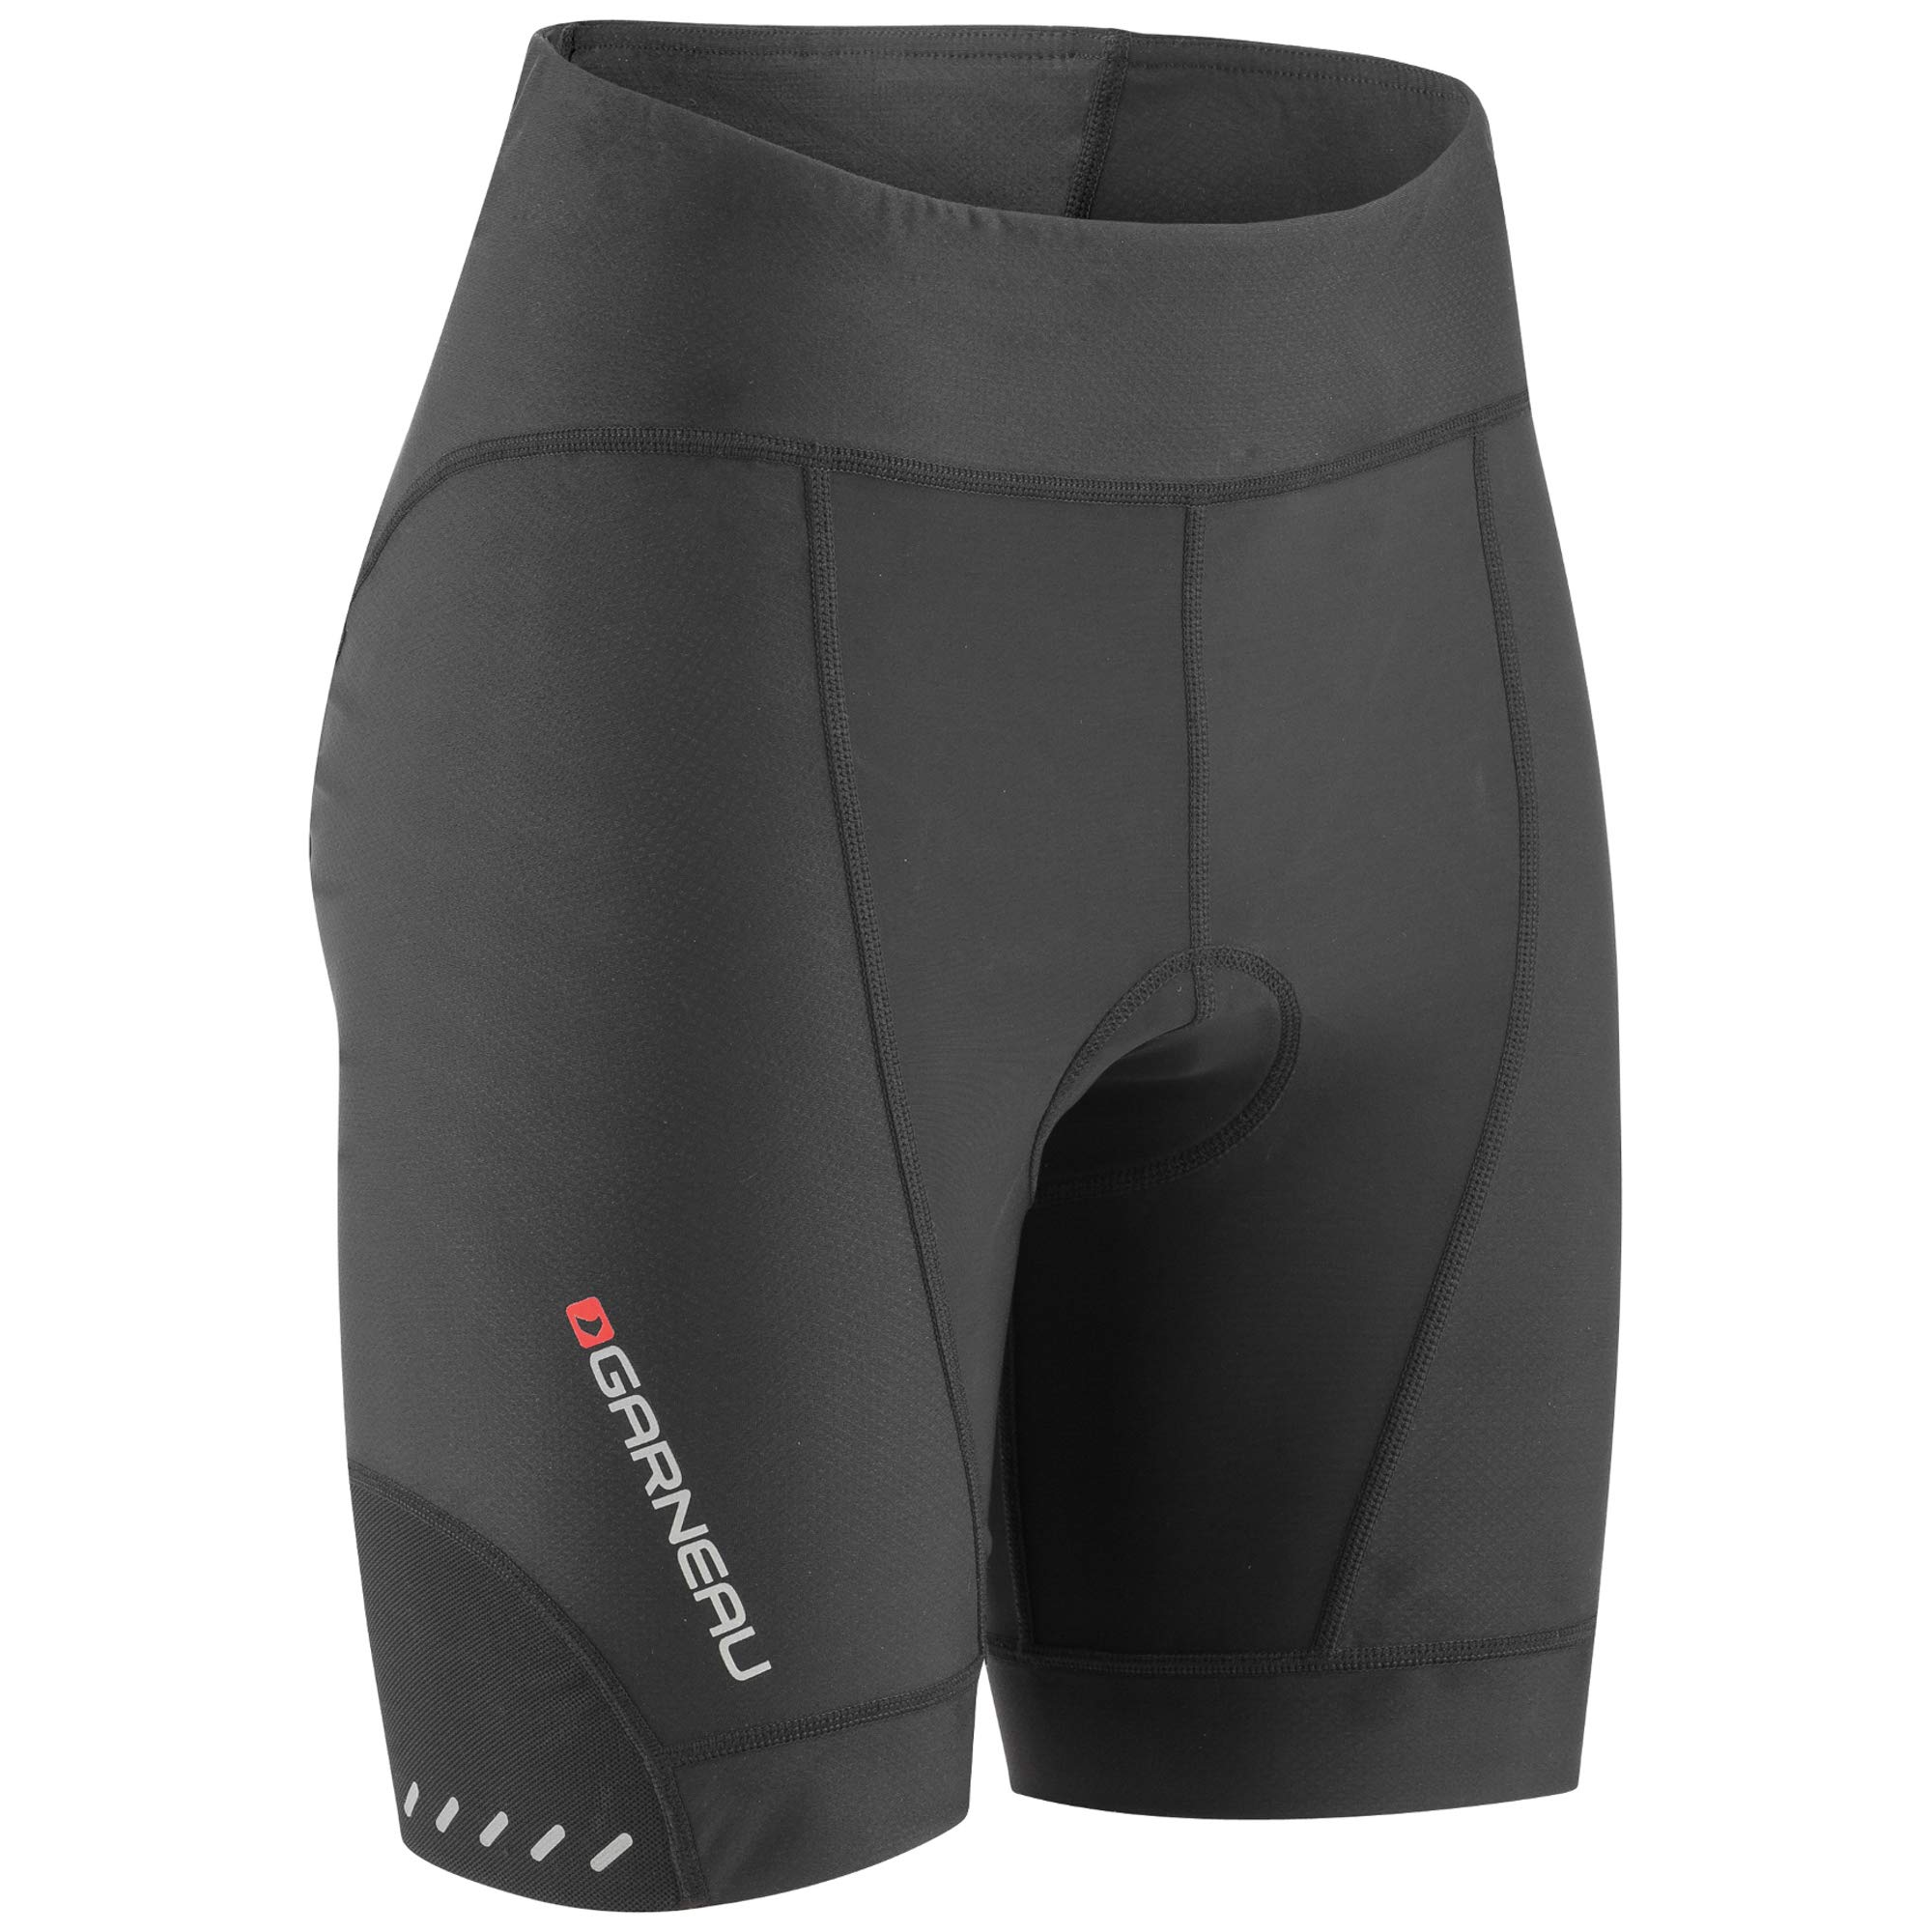 Louis Garneau Women's Optimum 7 Bike Shorts, Padded and Breathable for All-Weather Riding, Black, Medium by Louis Garneau